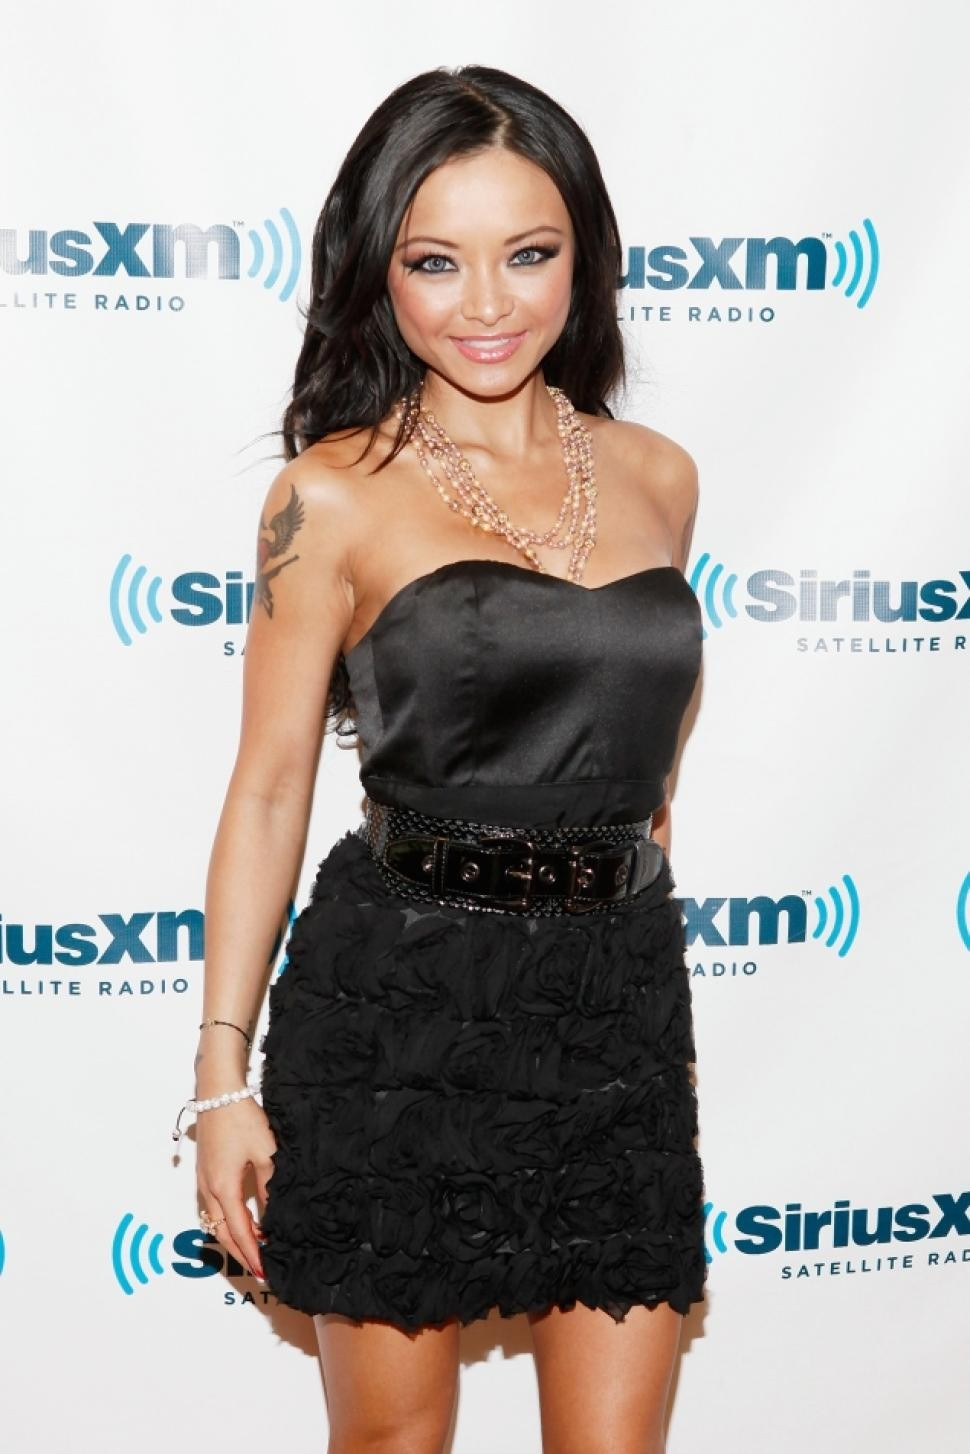 'Nazi Sympathizer' Tila Tequila Axed From UK 'Celebrity Big Brother' | Tila Tequila